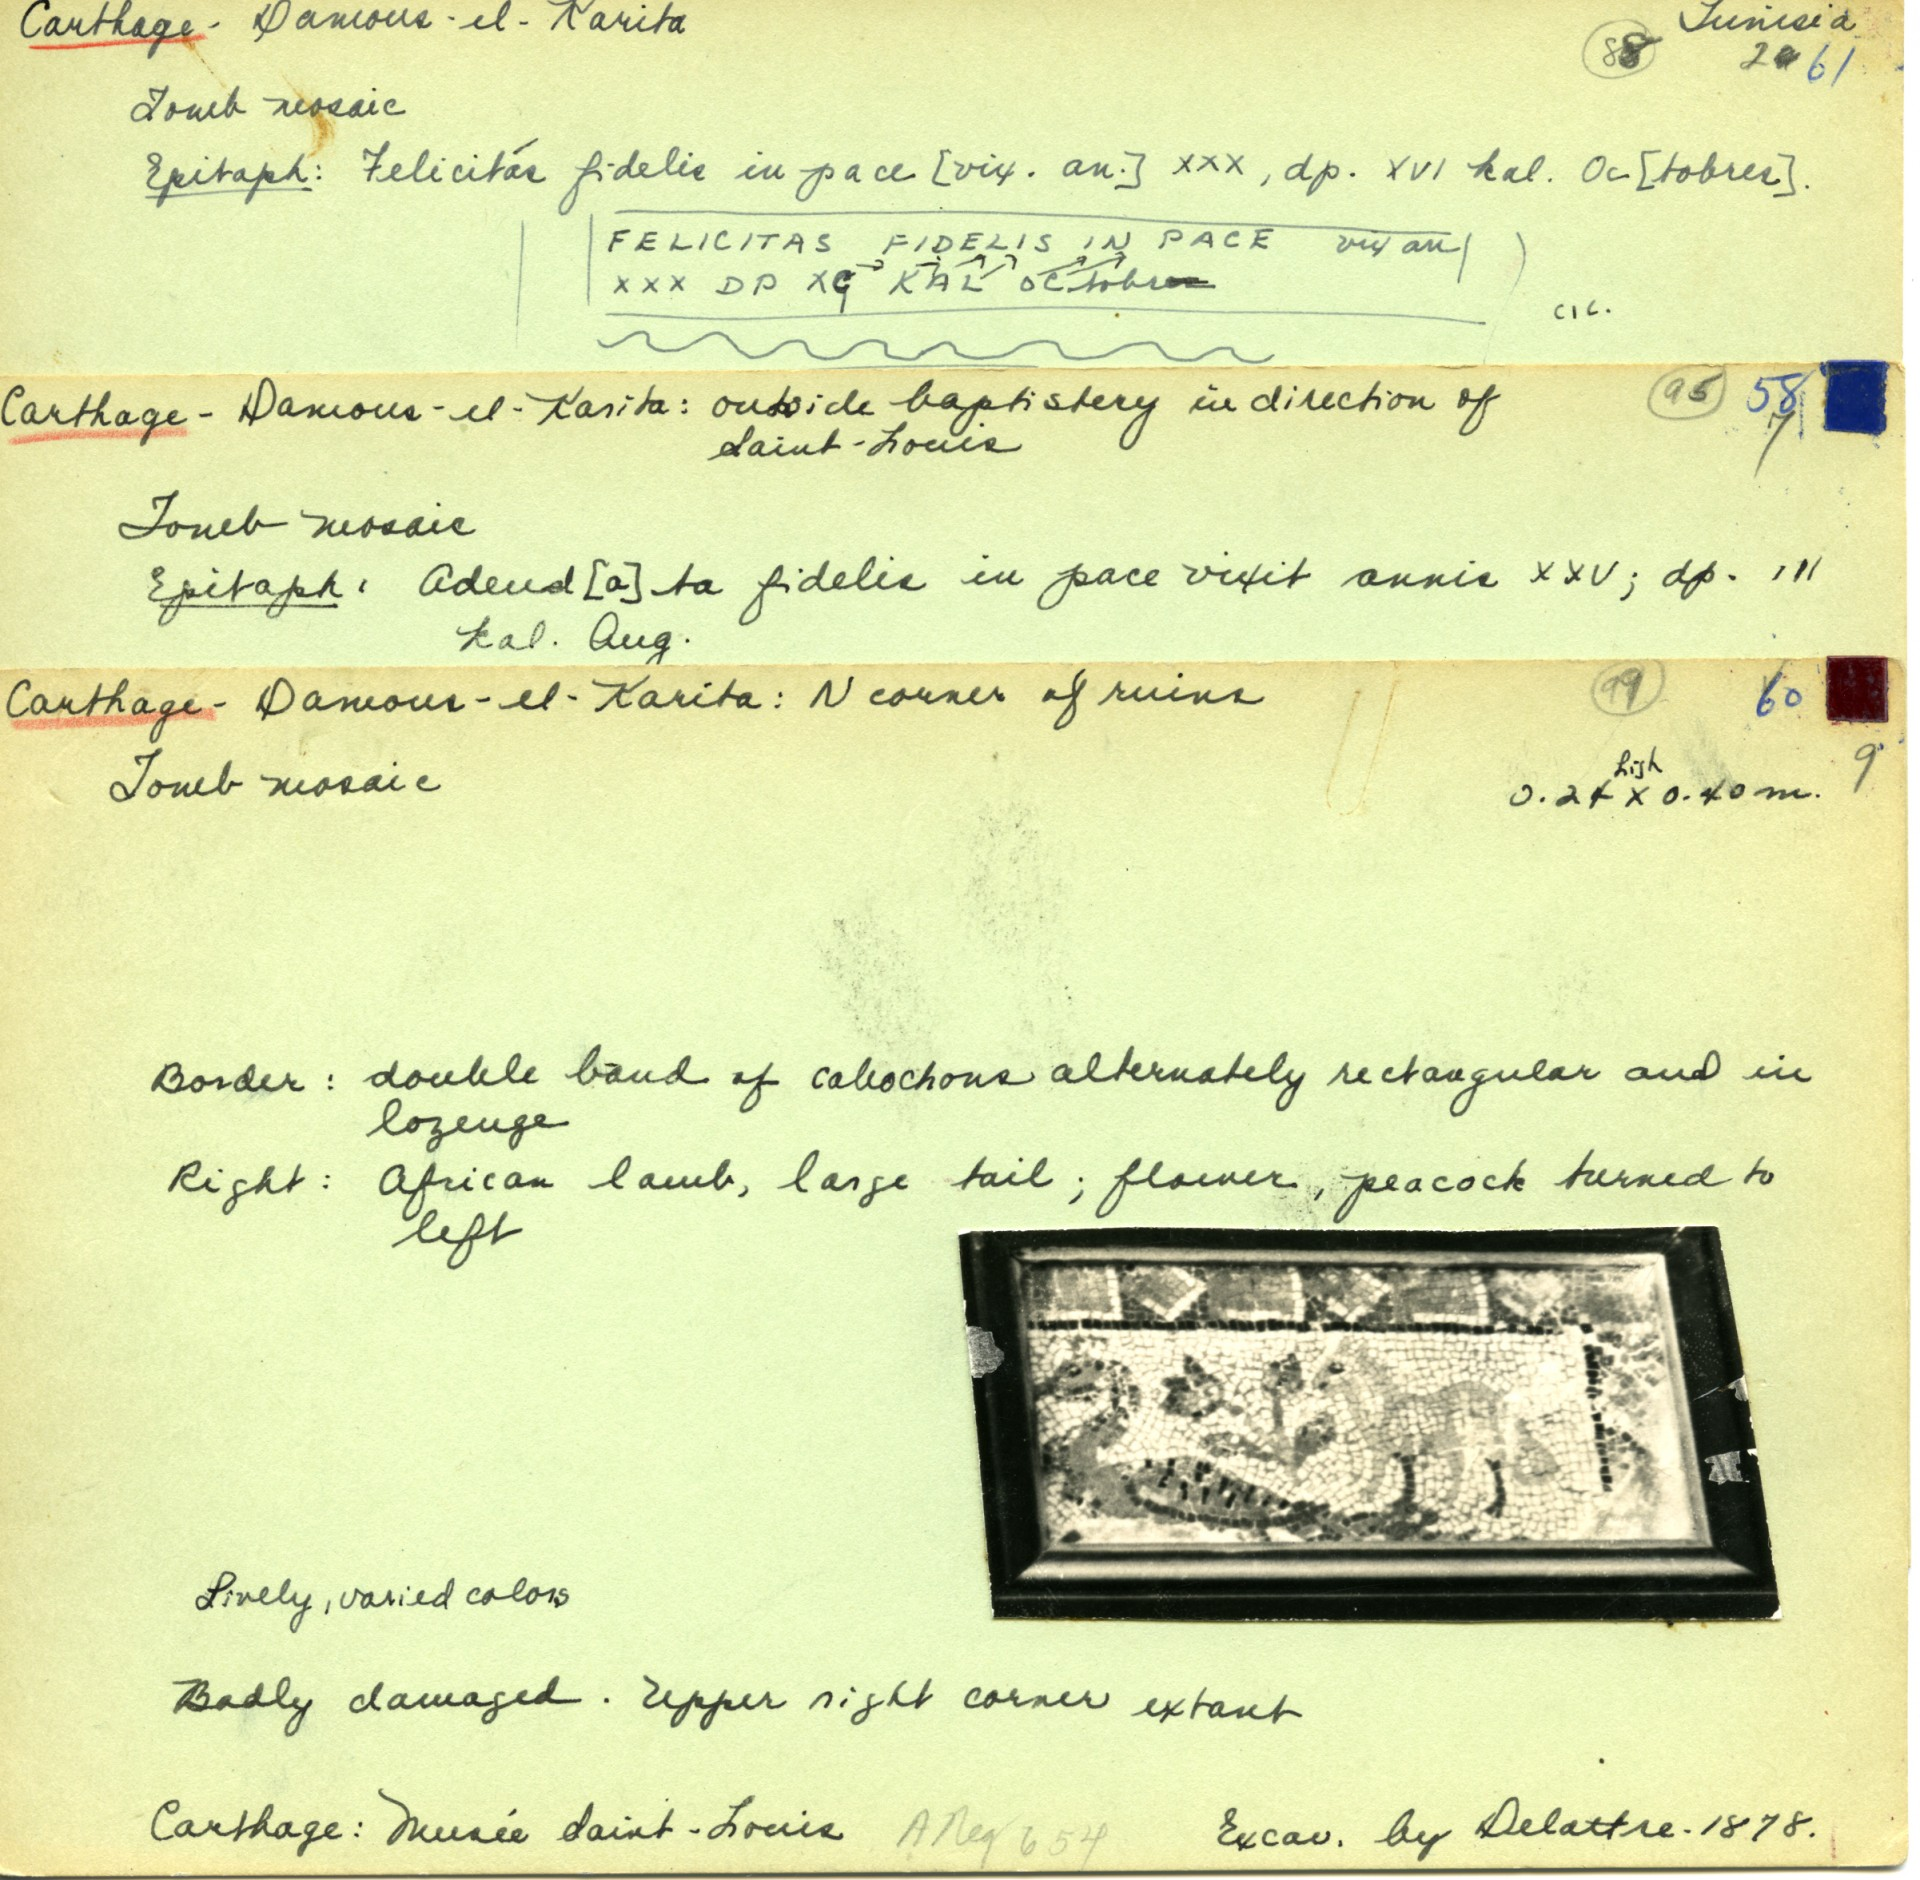 015 Note Cards For Research Paper Rare Taking Papers Card System Example Of Notecards 1920